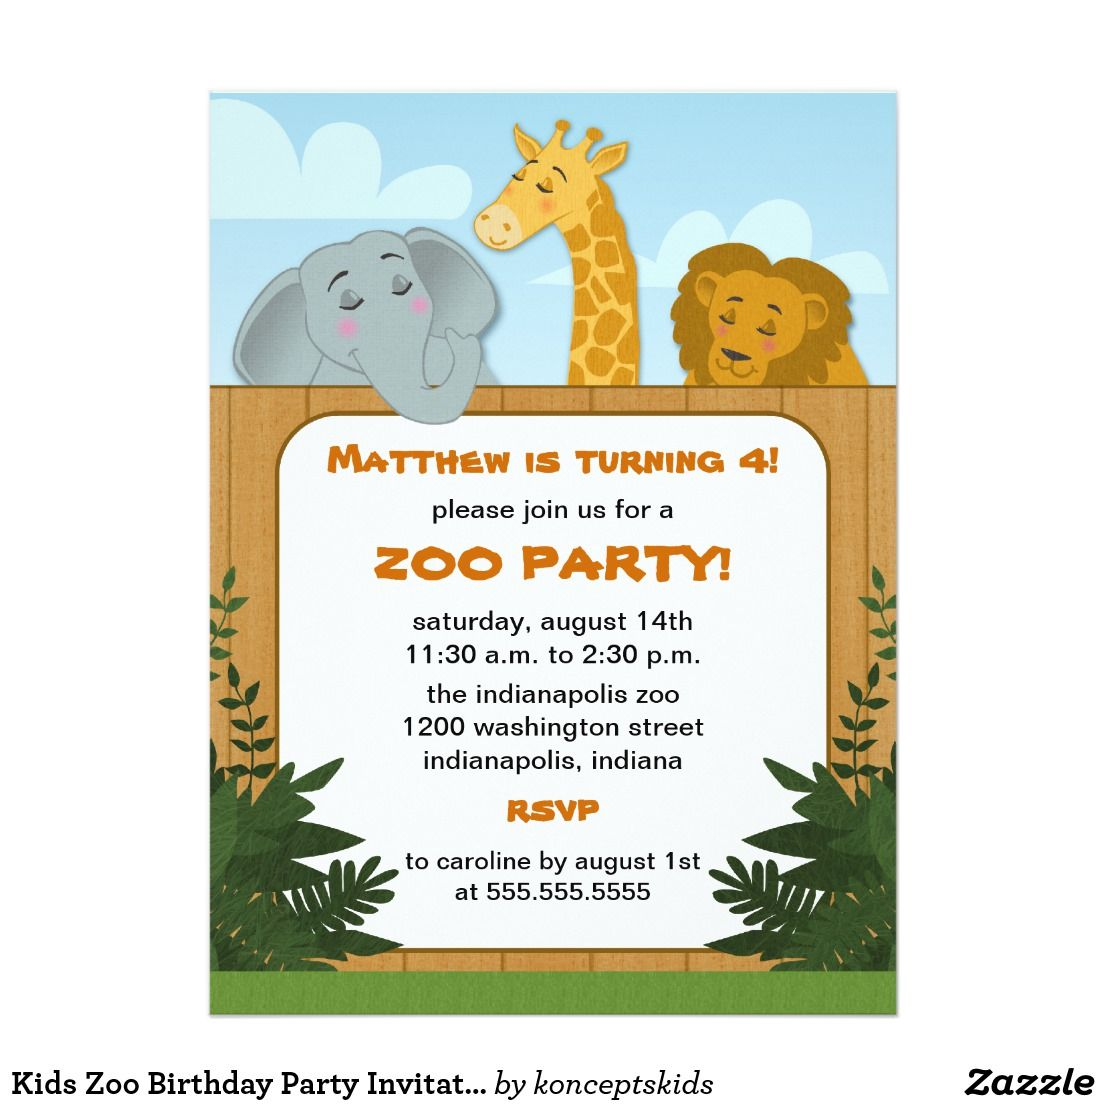 Kids Zoo Birthday Party Invitations | Zoo birthday, Party ...